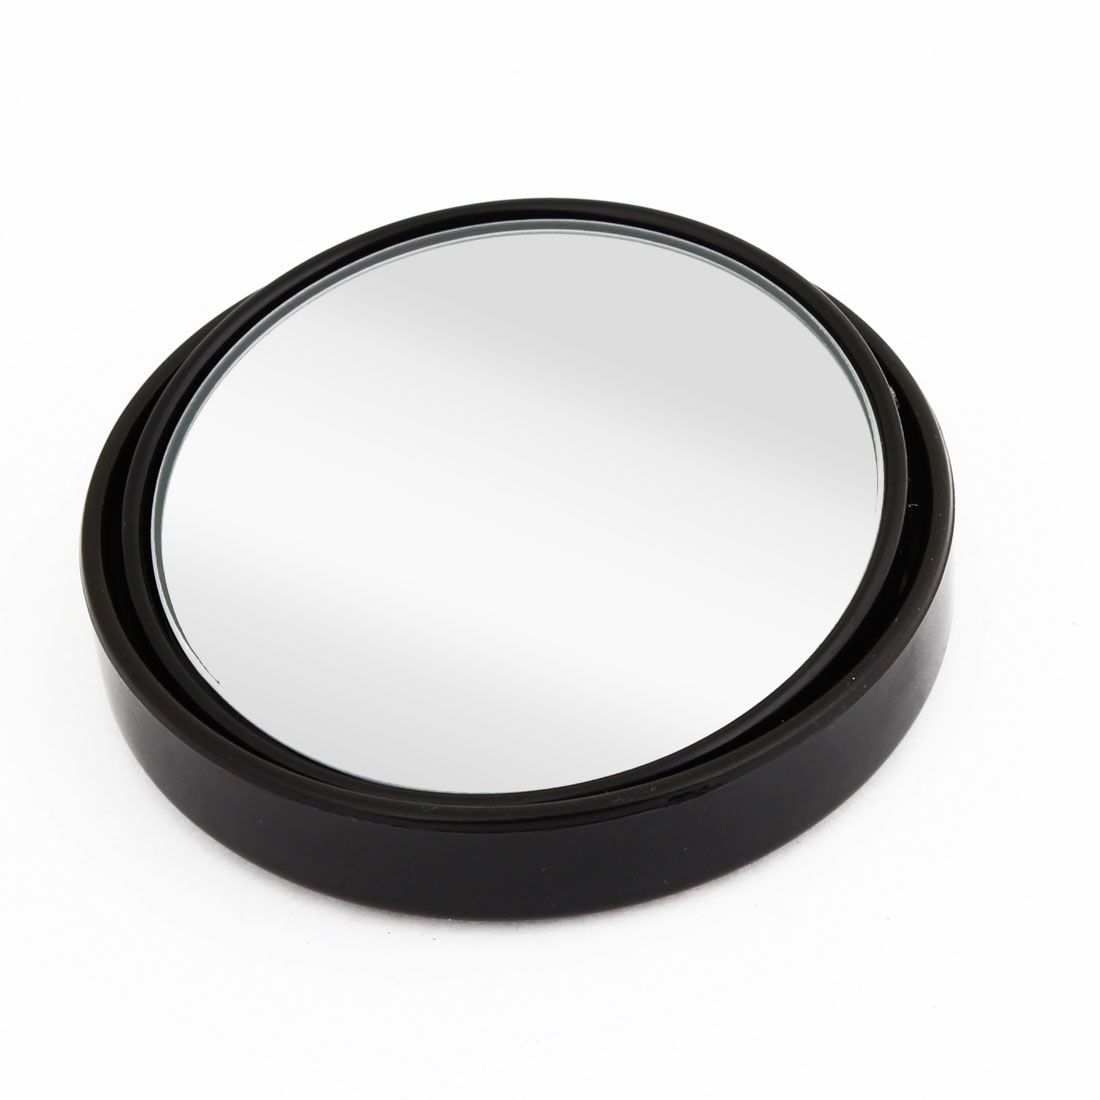 """2.2"""" Black 360 Degree Adjustable Convex Rear View Blind Spot Mirror for Vehicle"""